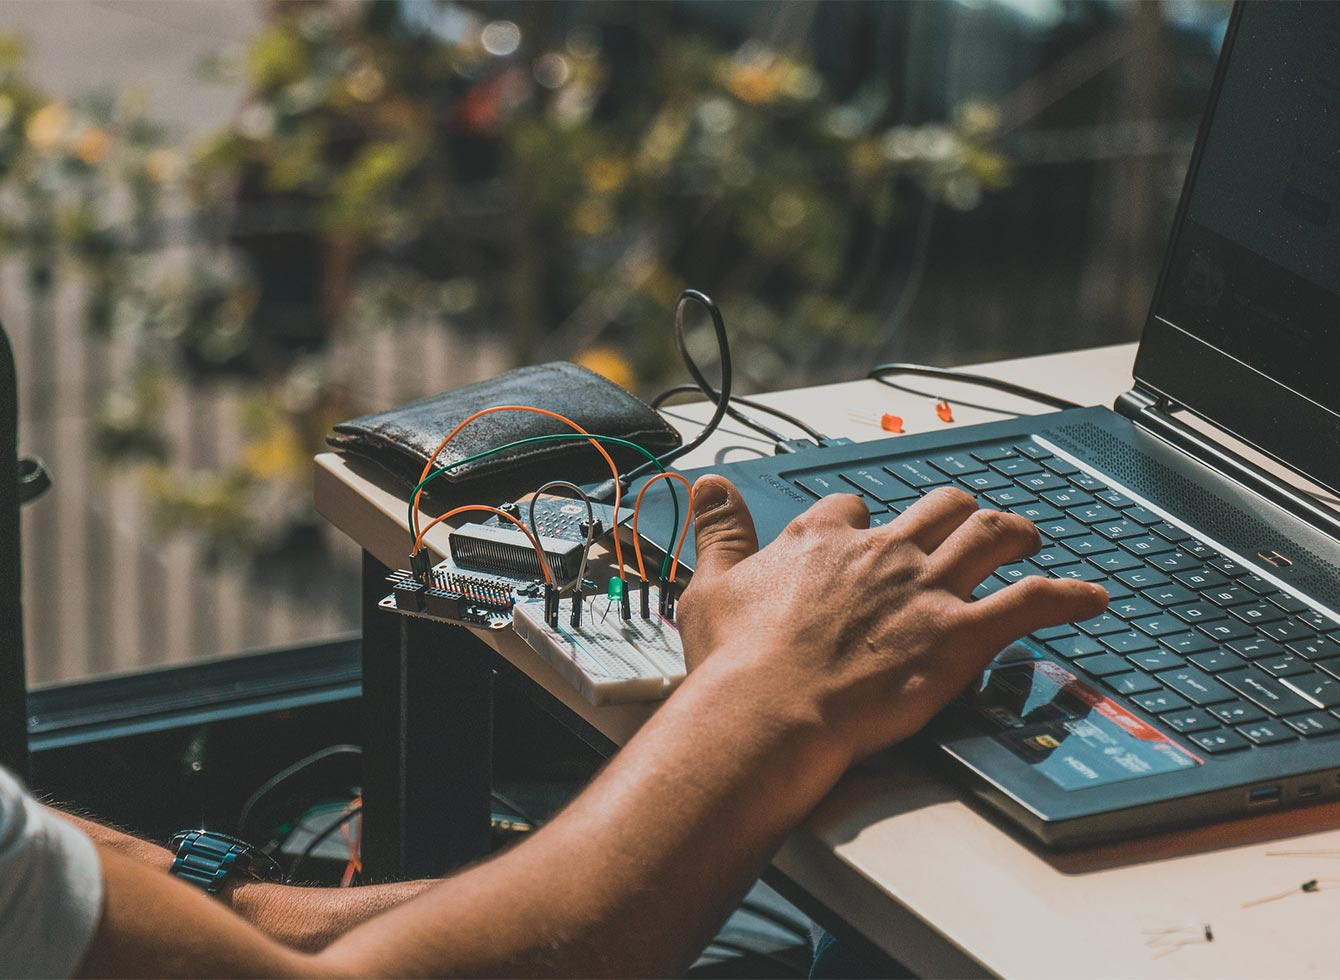 A hand reaching for the computer in the Master Program Digital Technology Engineering